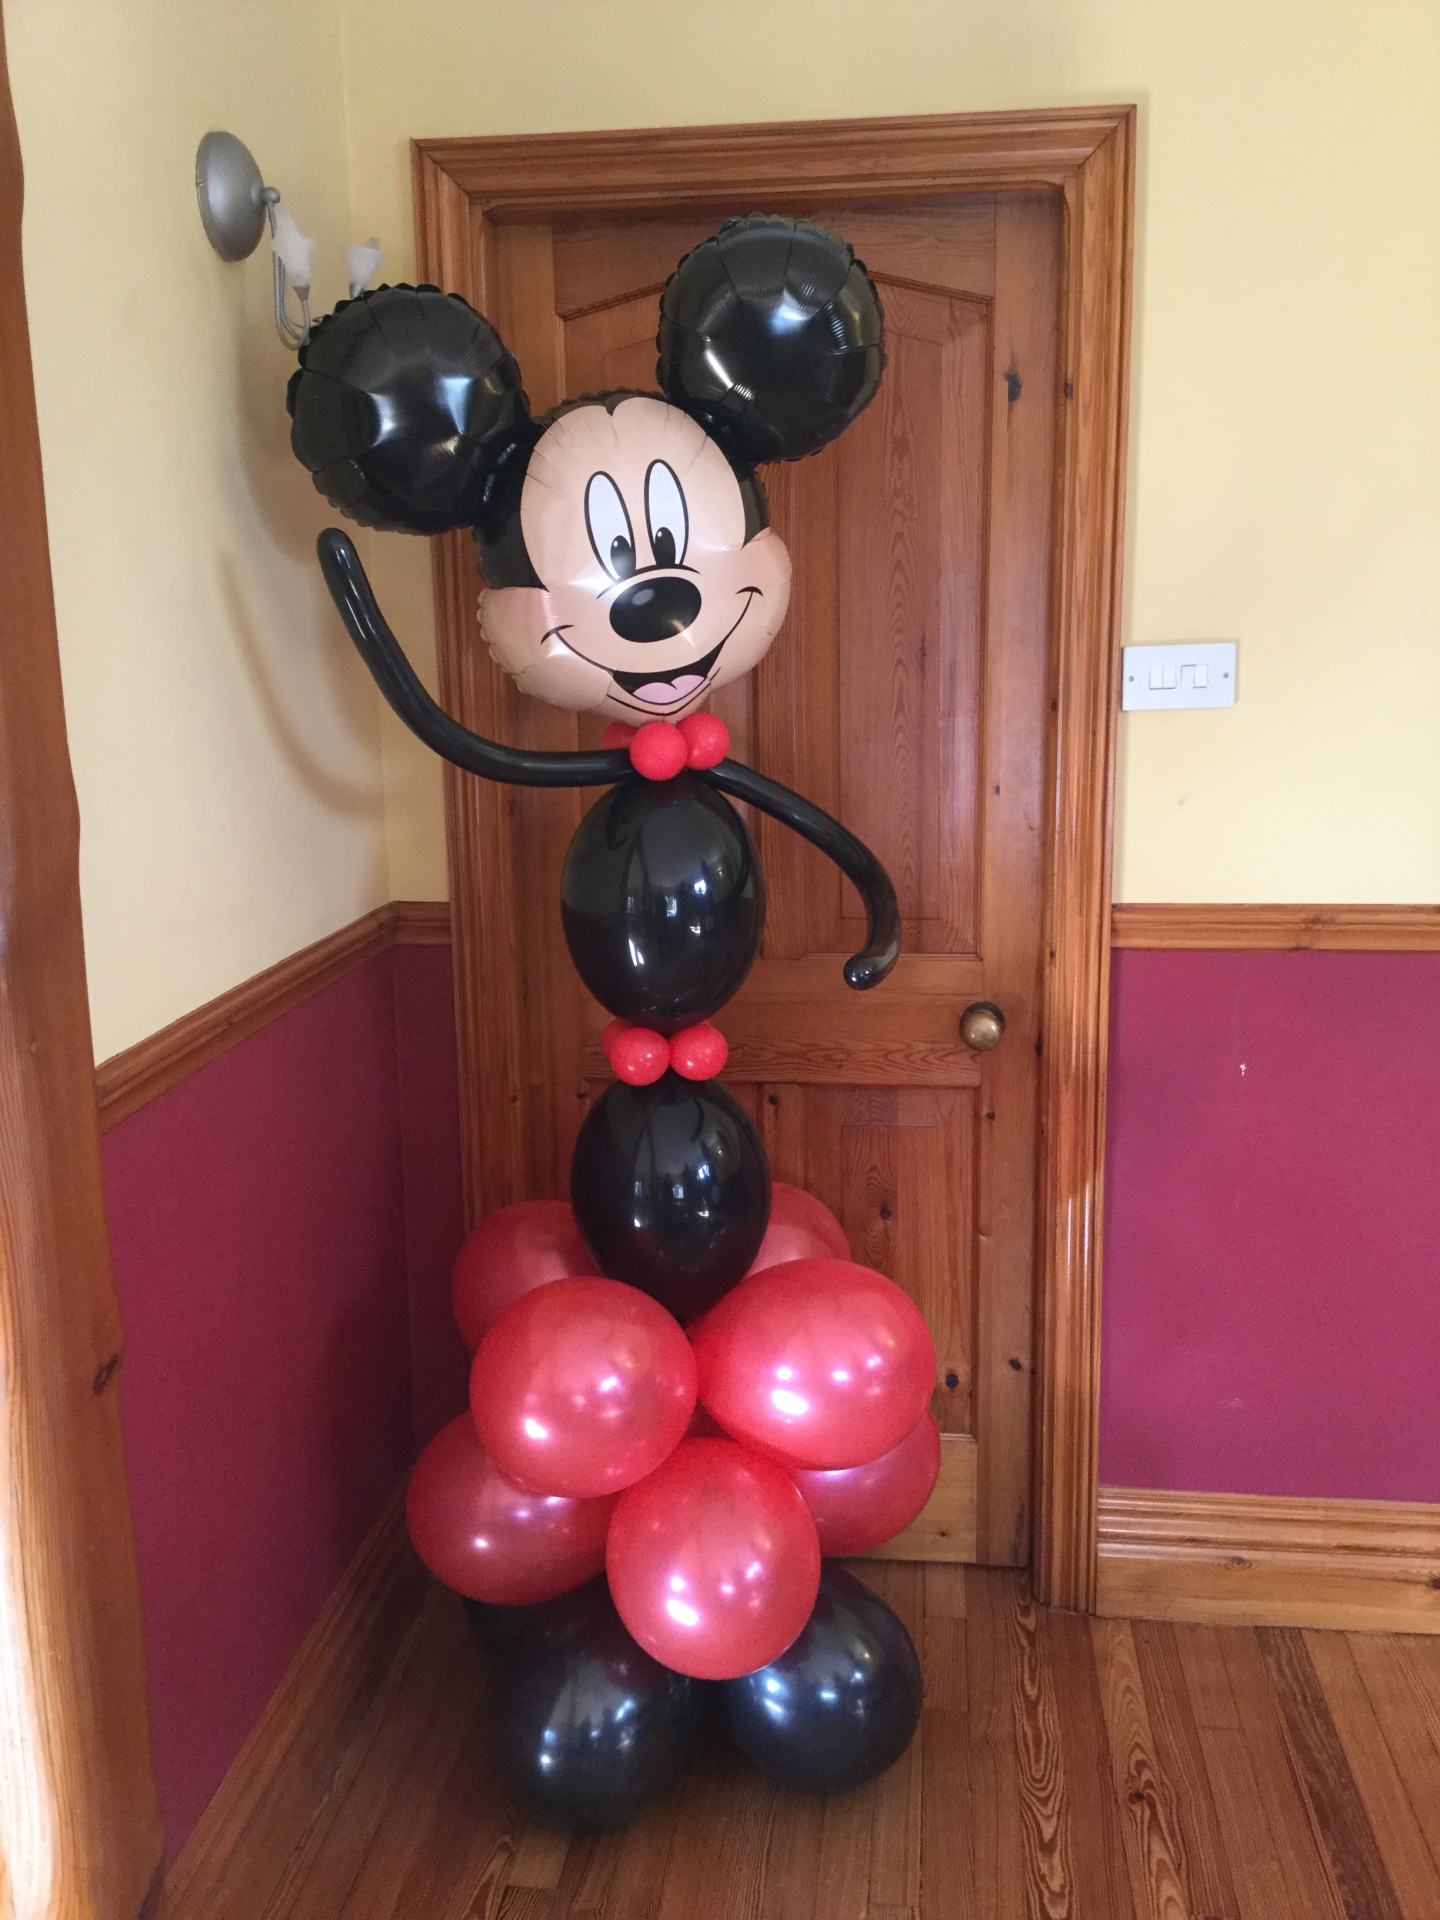 Large Micky Mouse Sculpture